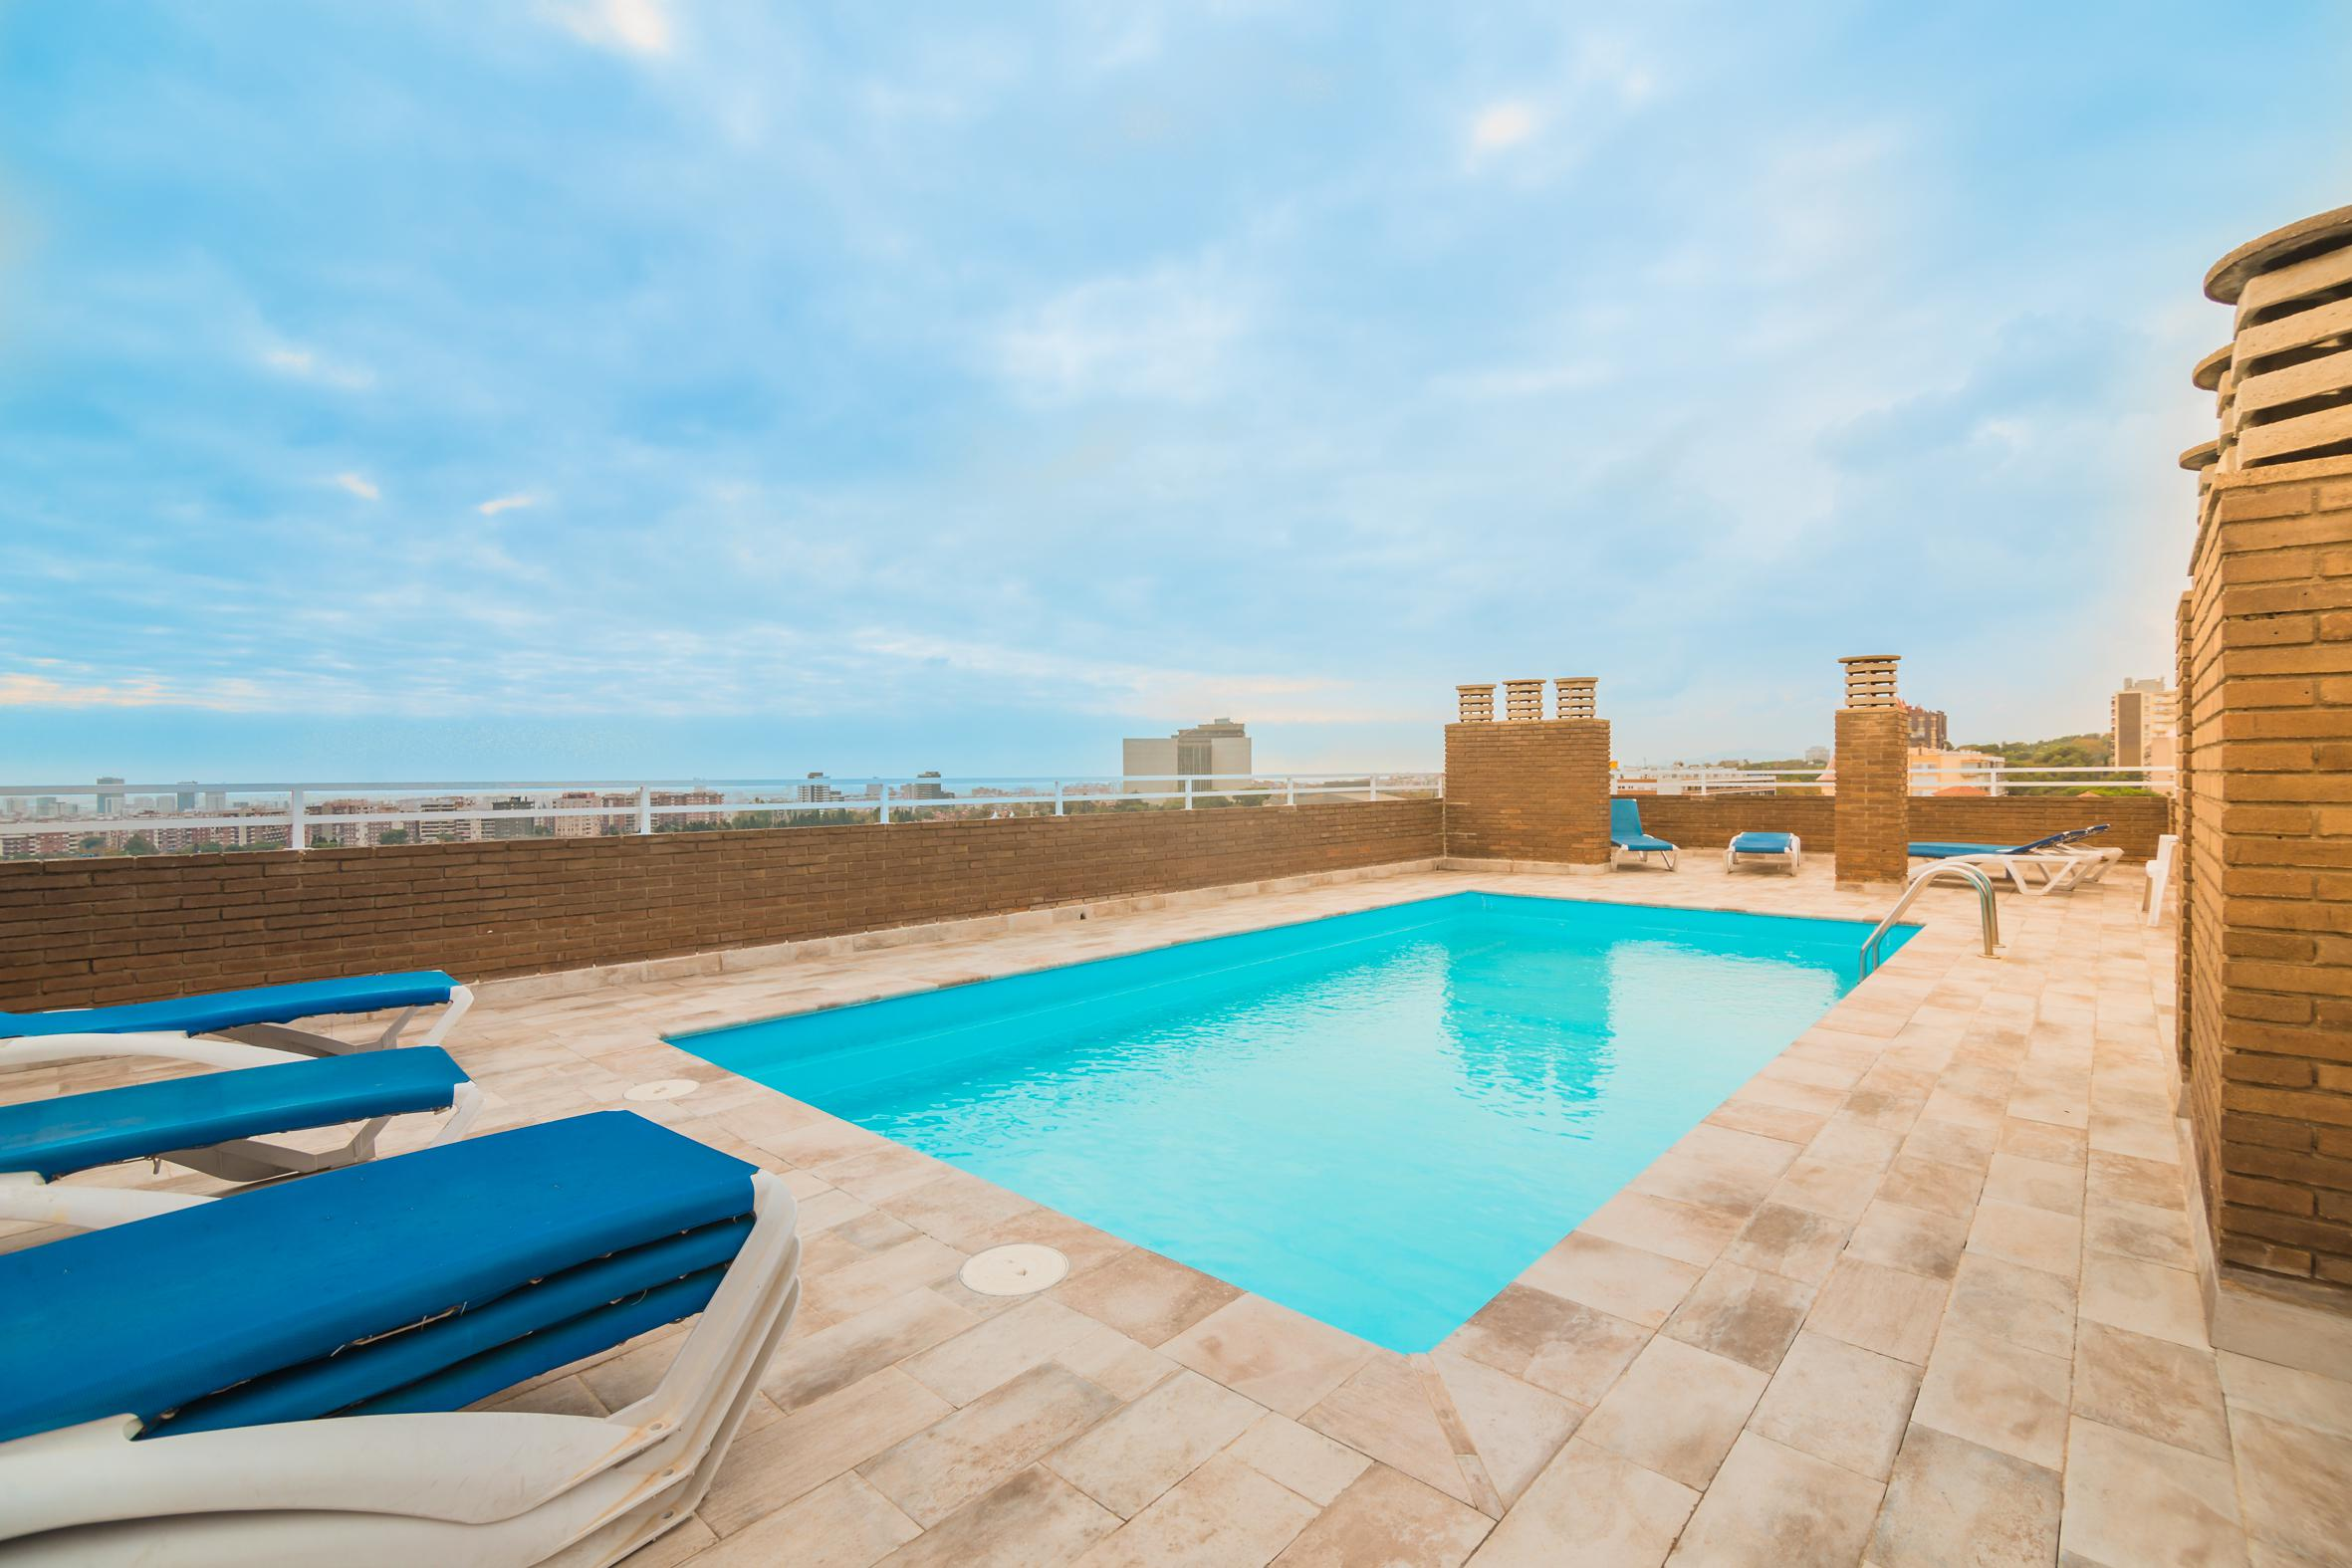 246902 Flat for sale in Les Corts, Pedralbes 31